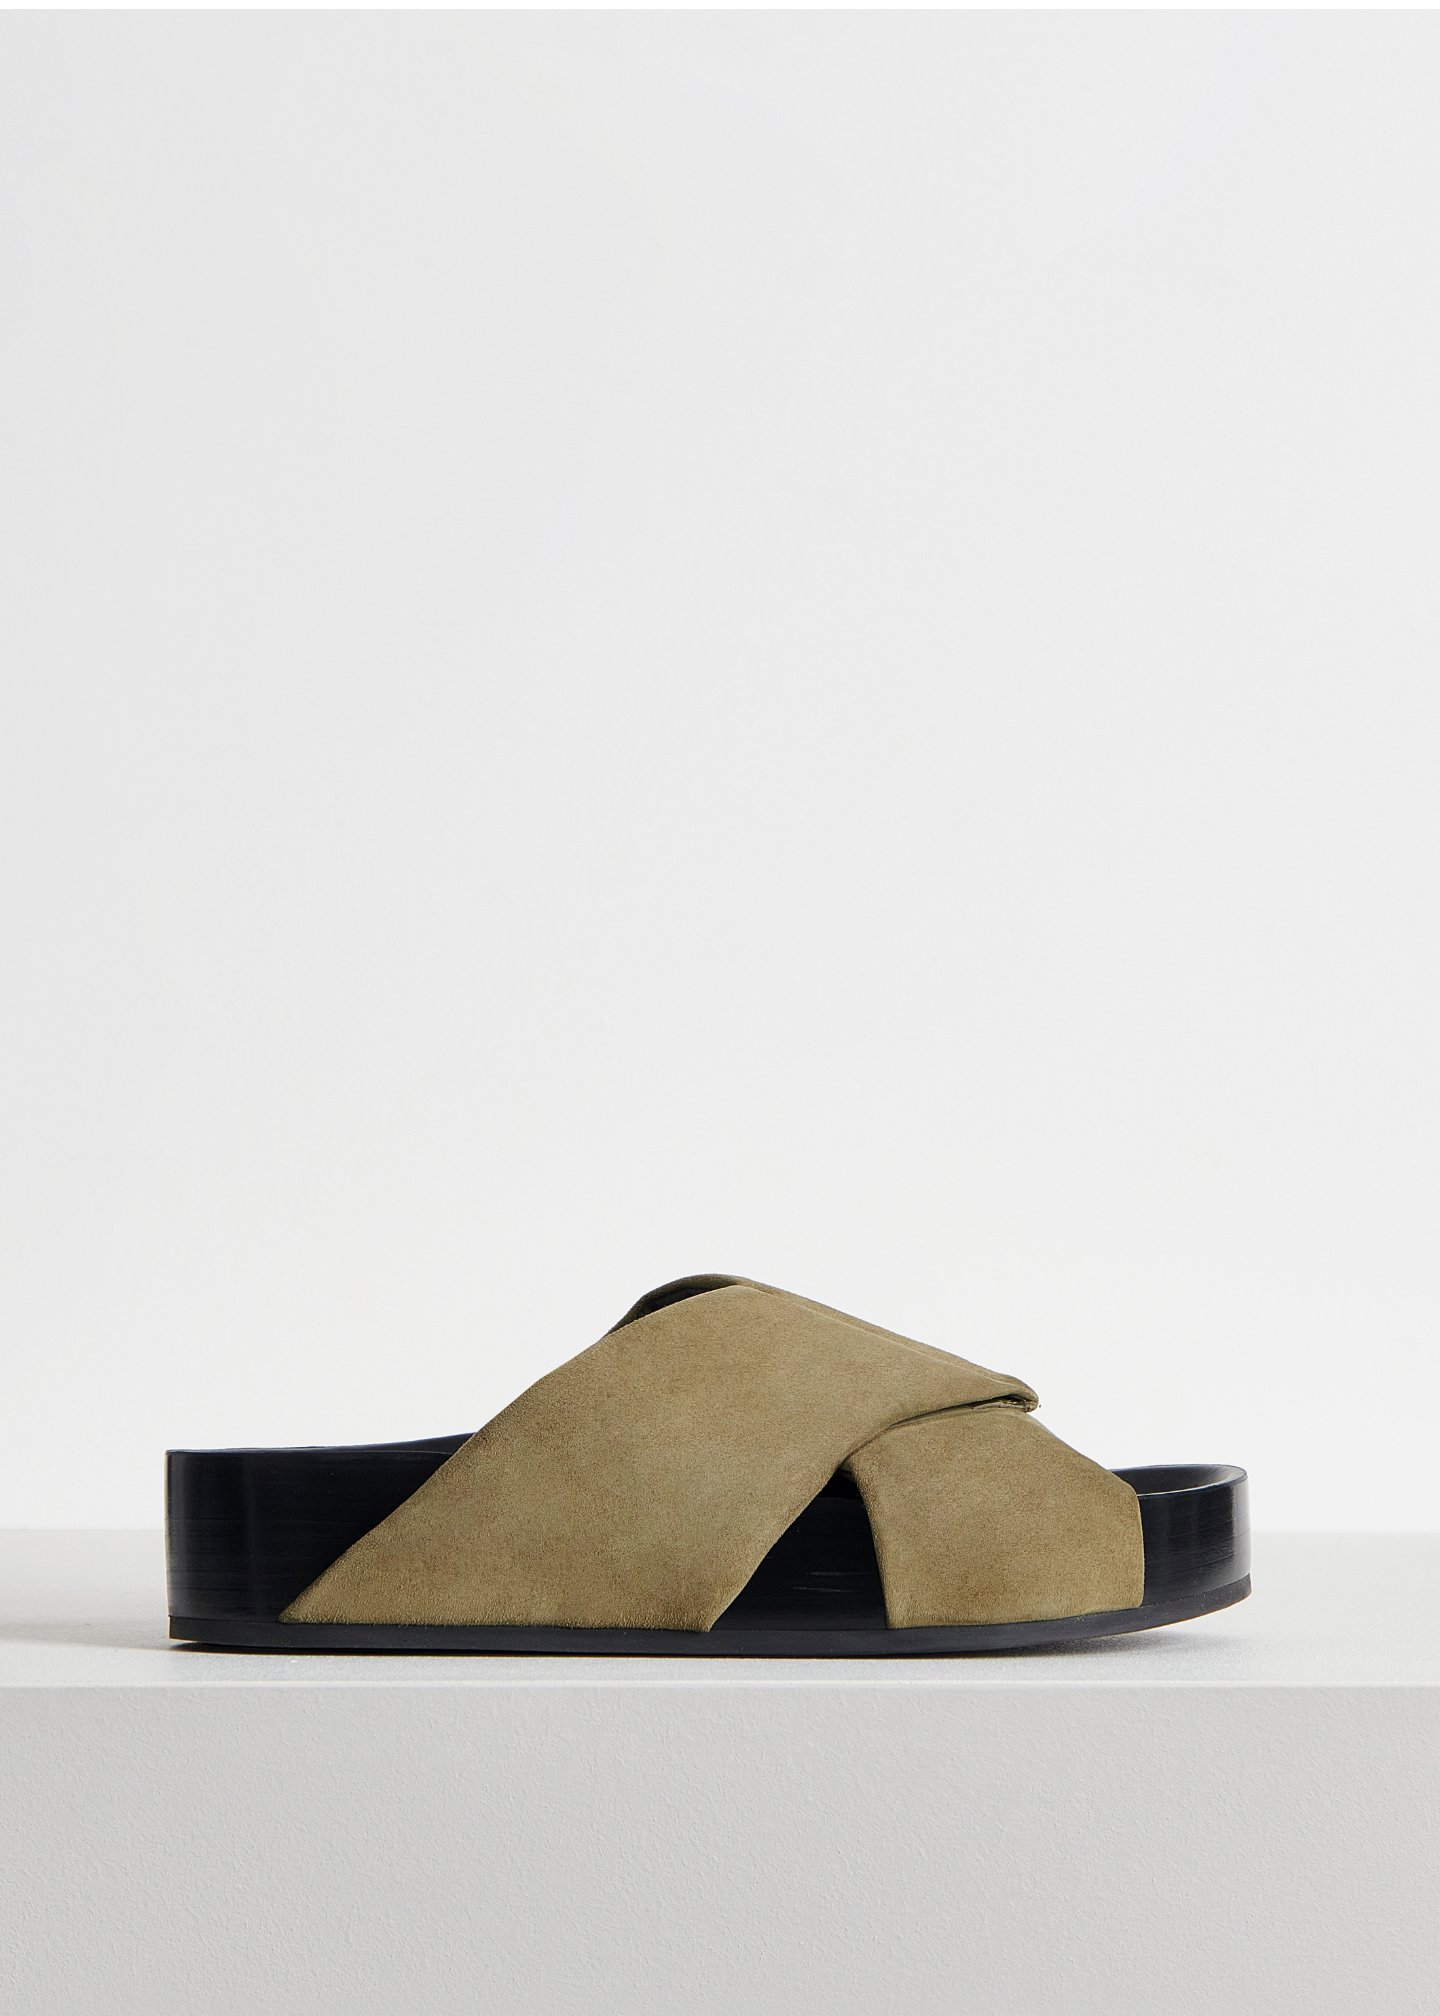 Slide Sandal in Suede - Sand in Olive by Co Collections